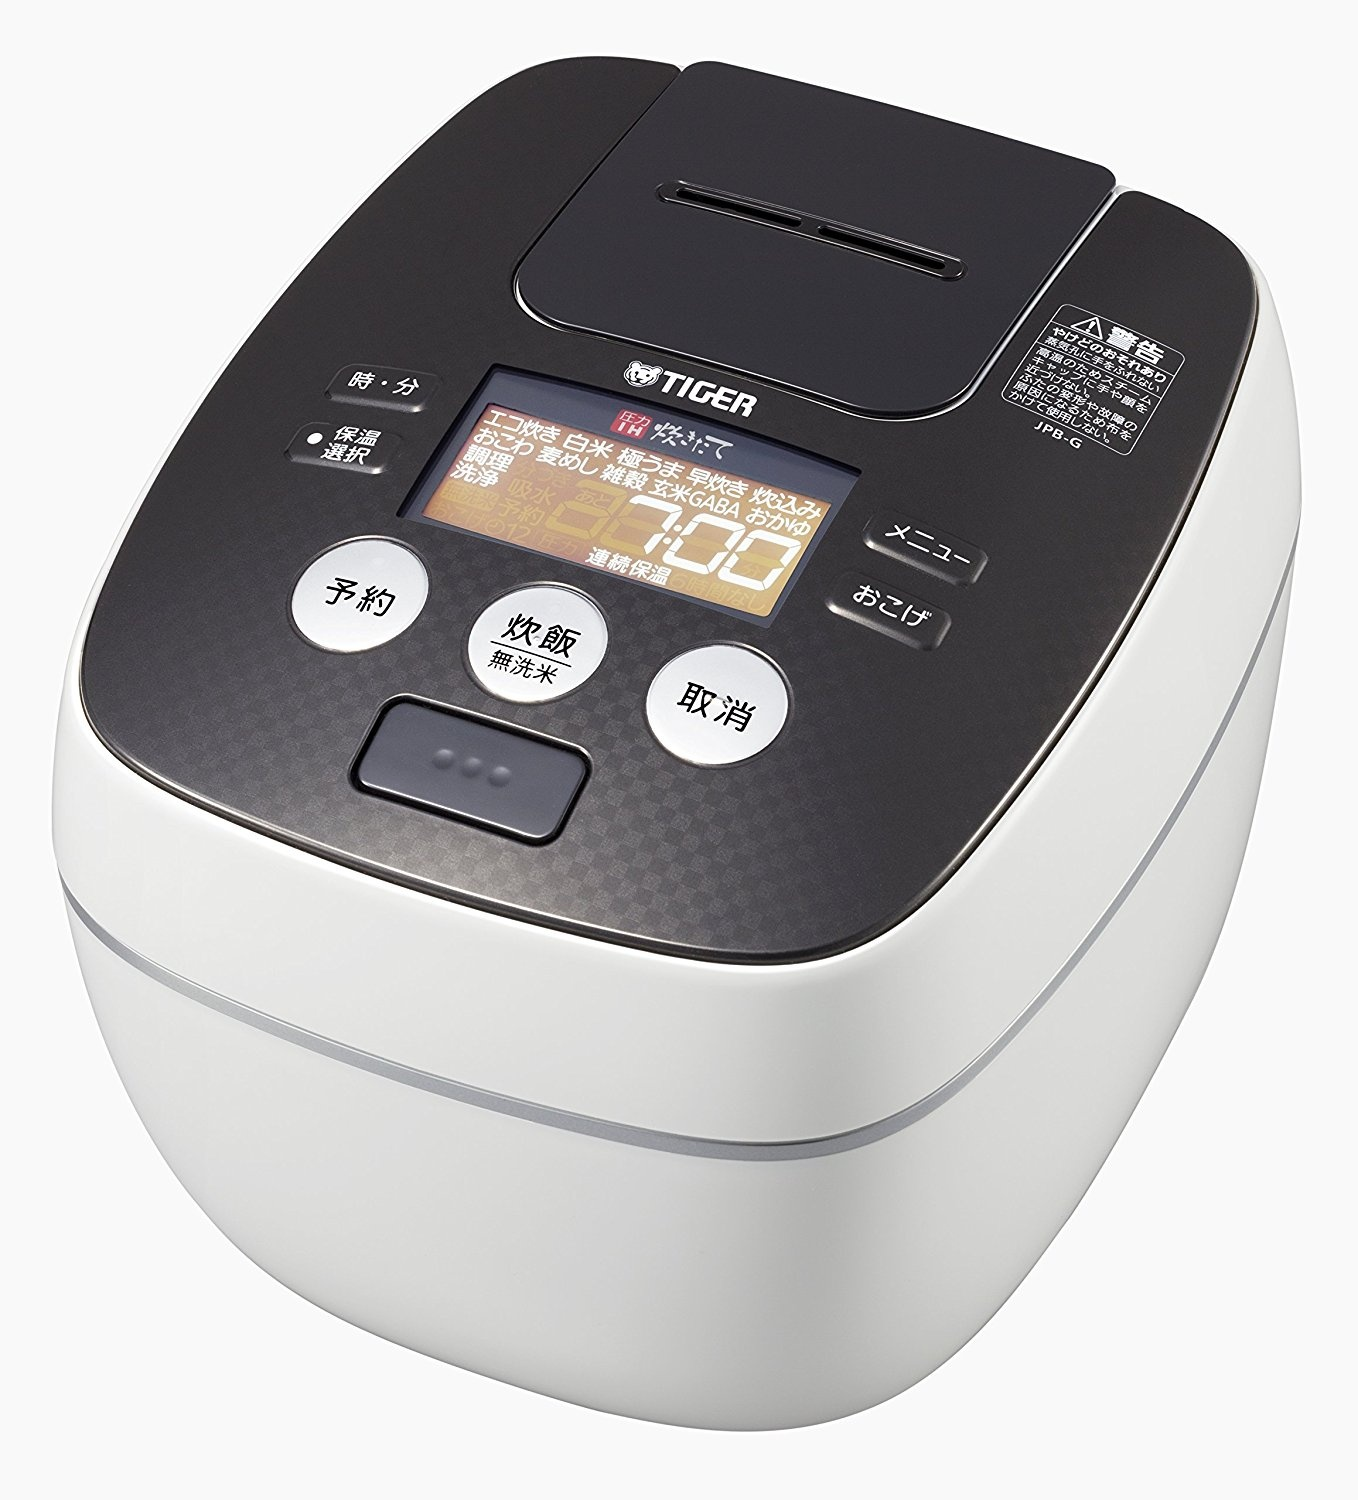 Tiger Rice Cooker Kitchen Buy Online From Wiring Diagram